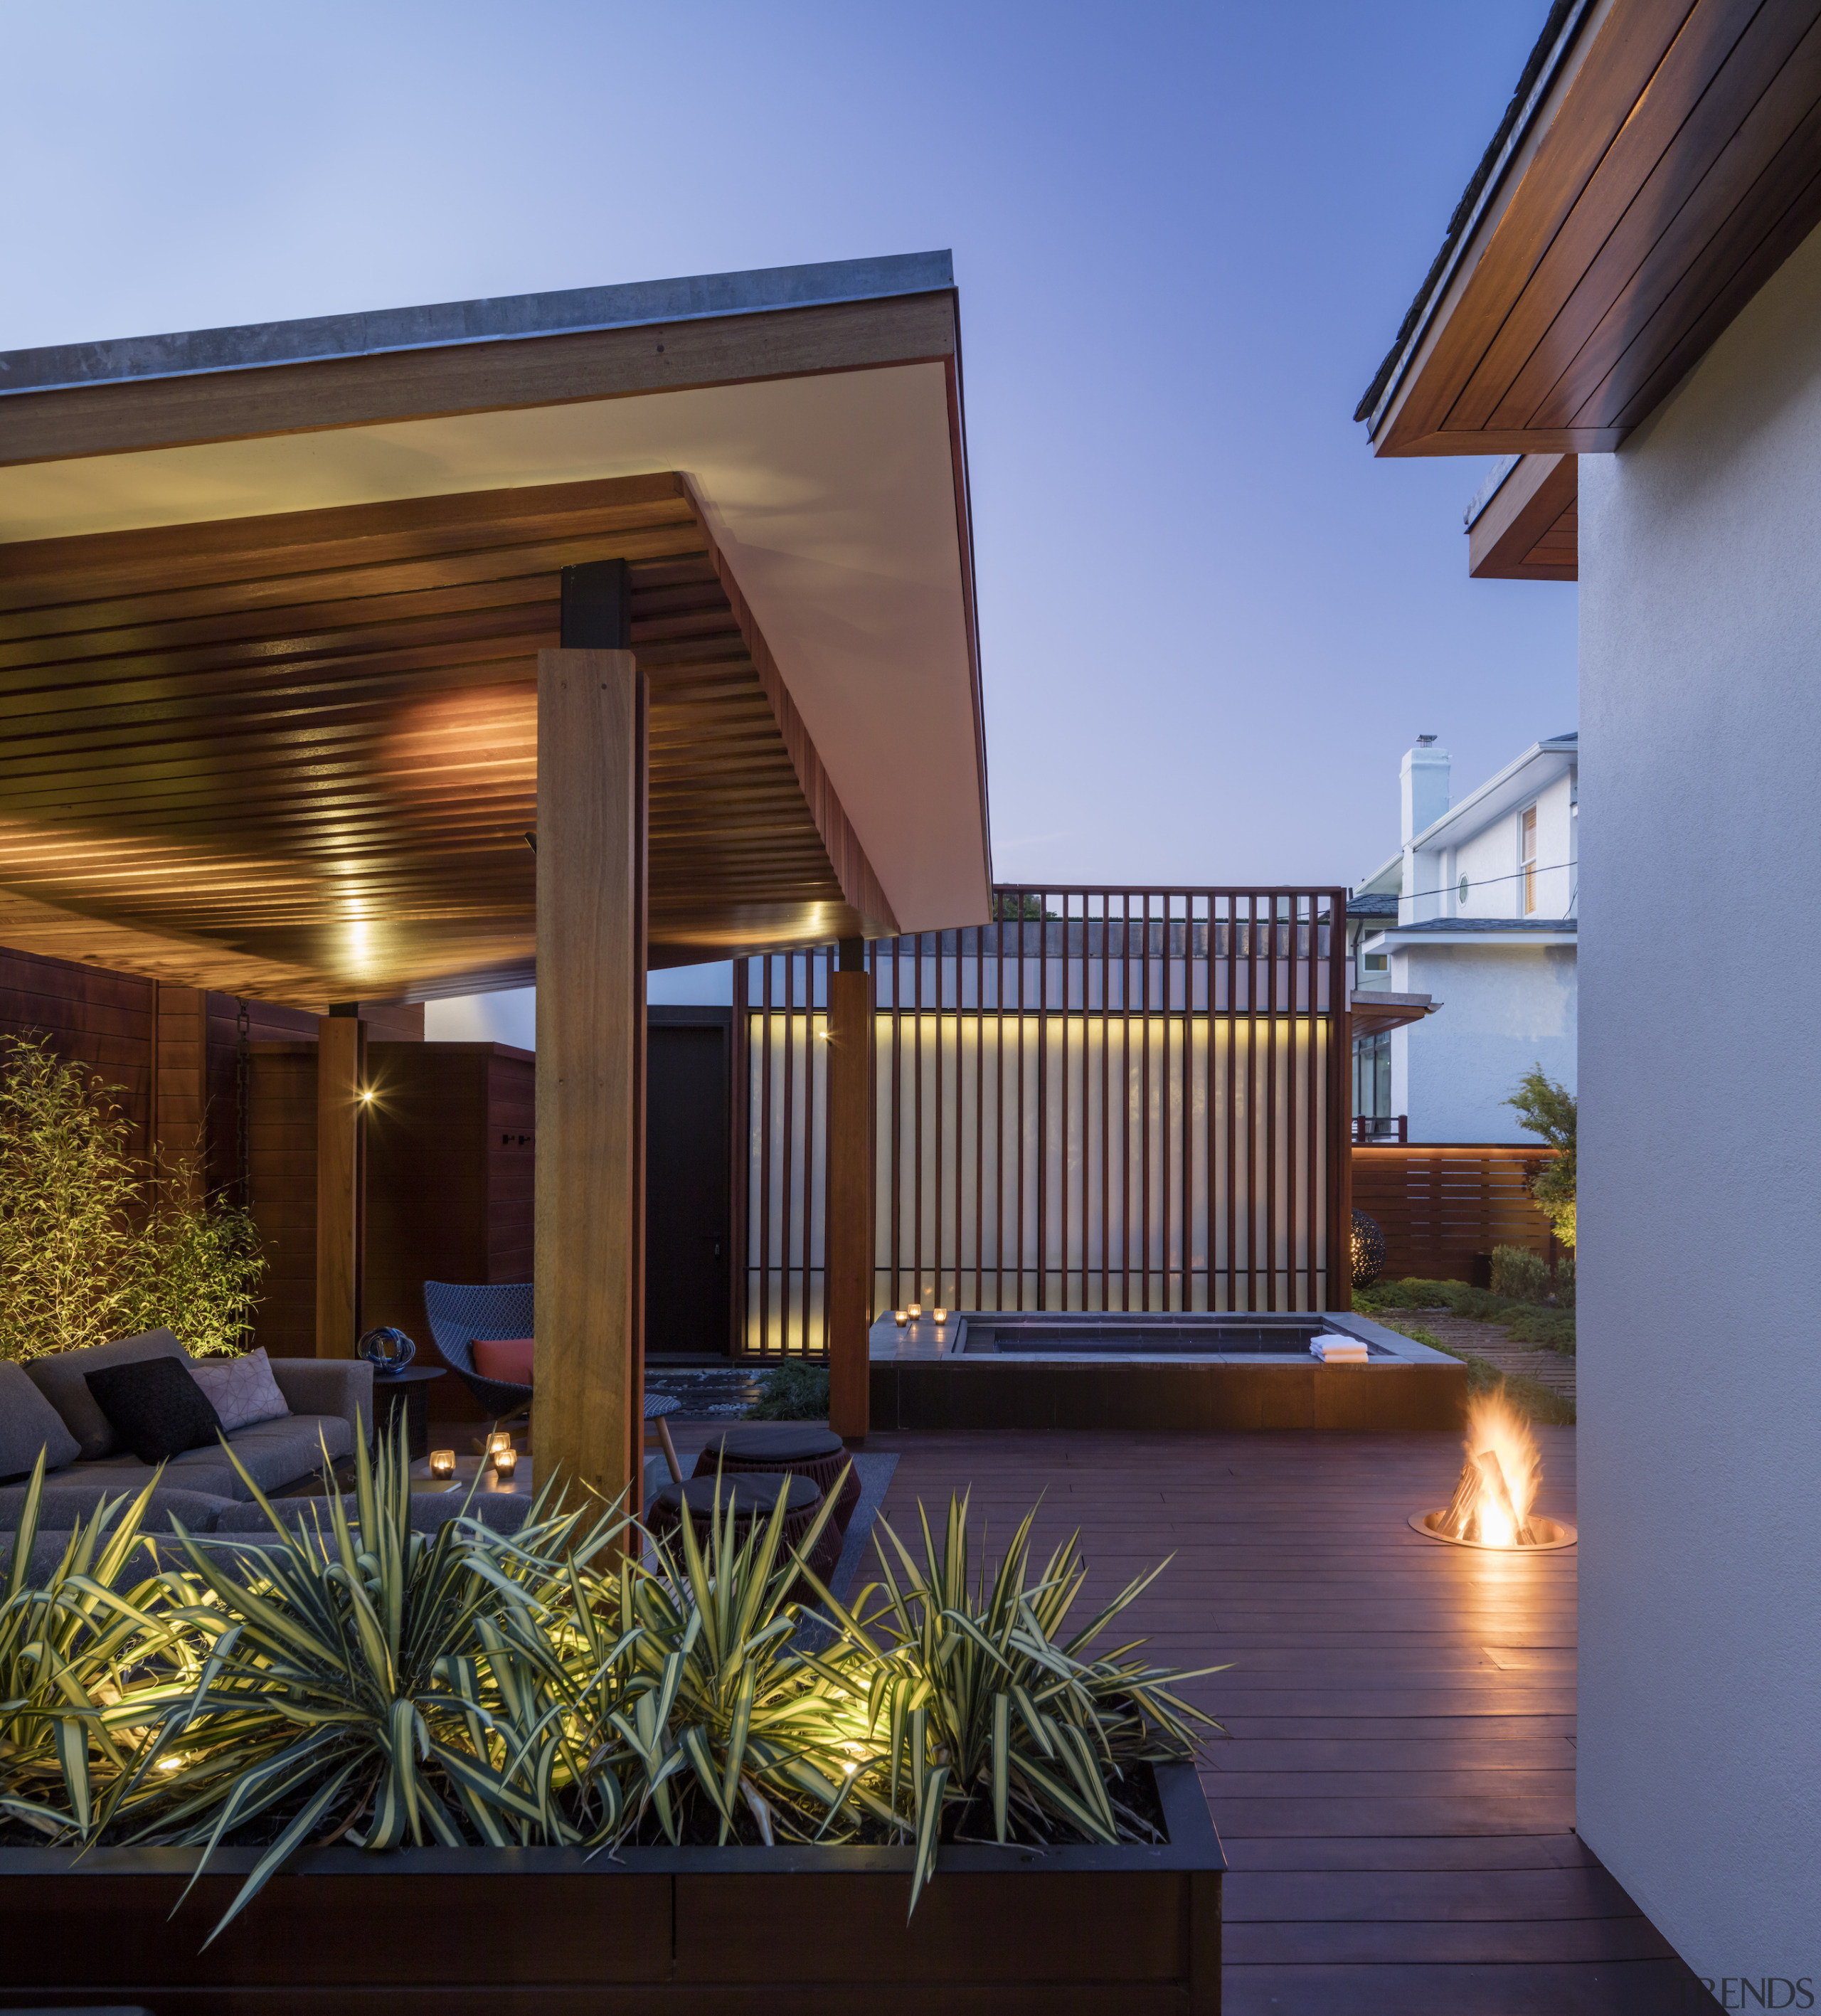 The sheltered outdoor pavilion. - A hip roof